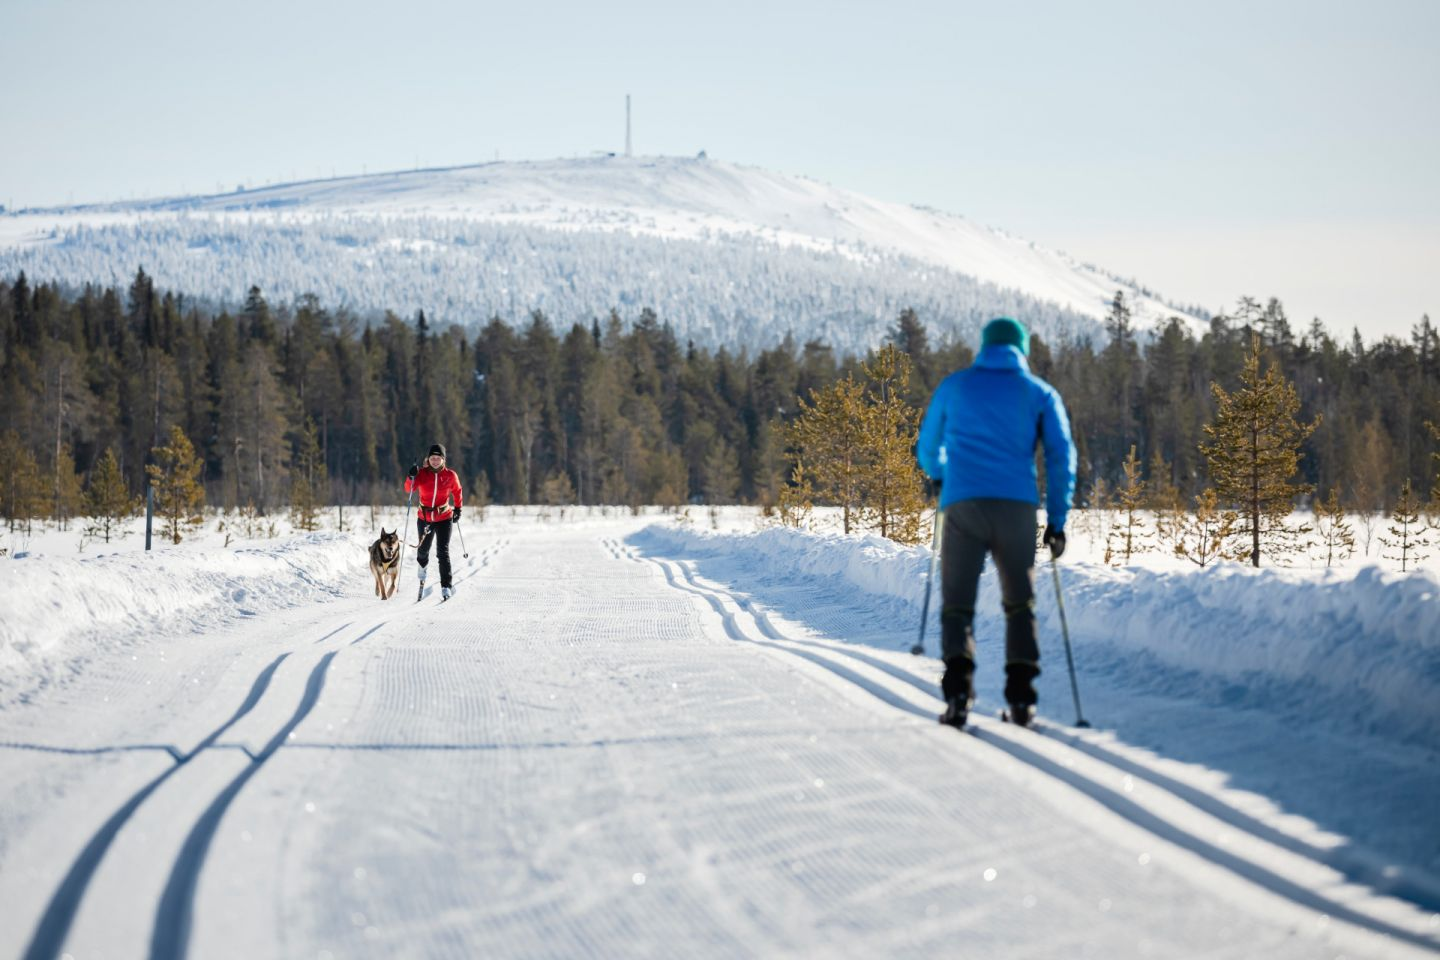 Cross-country skiing in Pyhä-Luosto, Finland